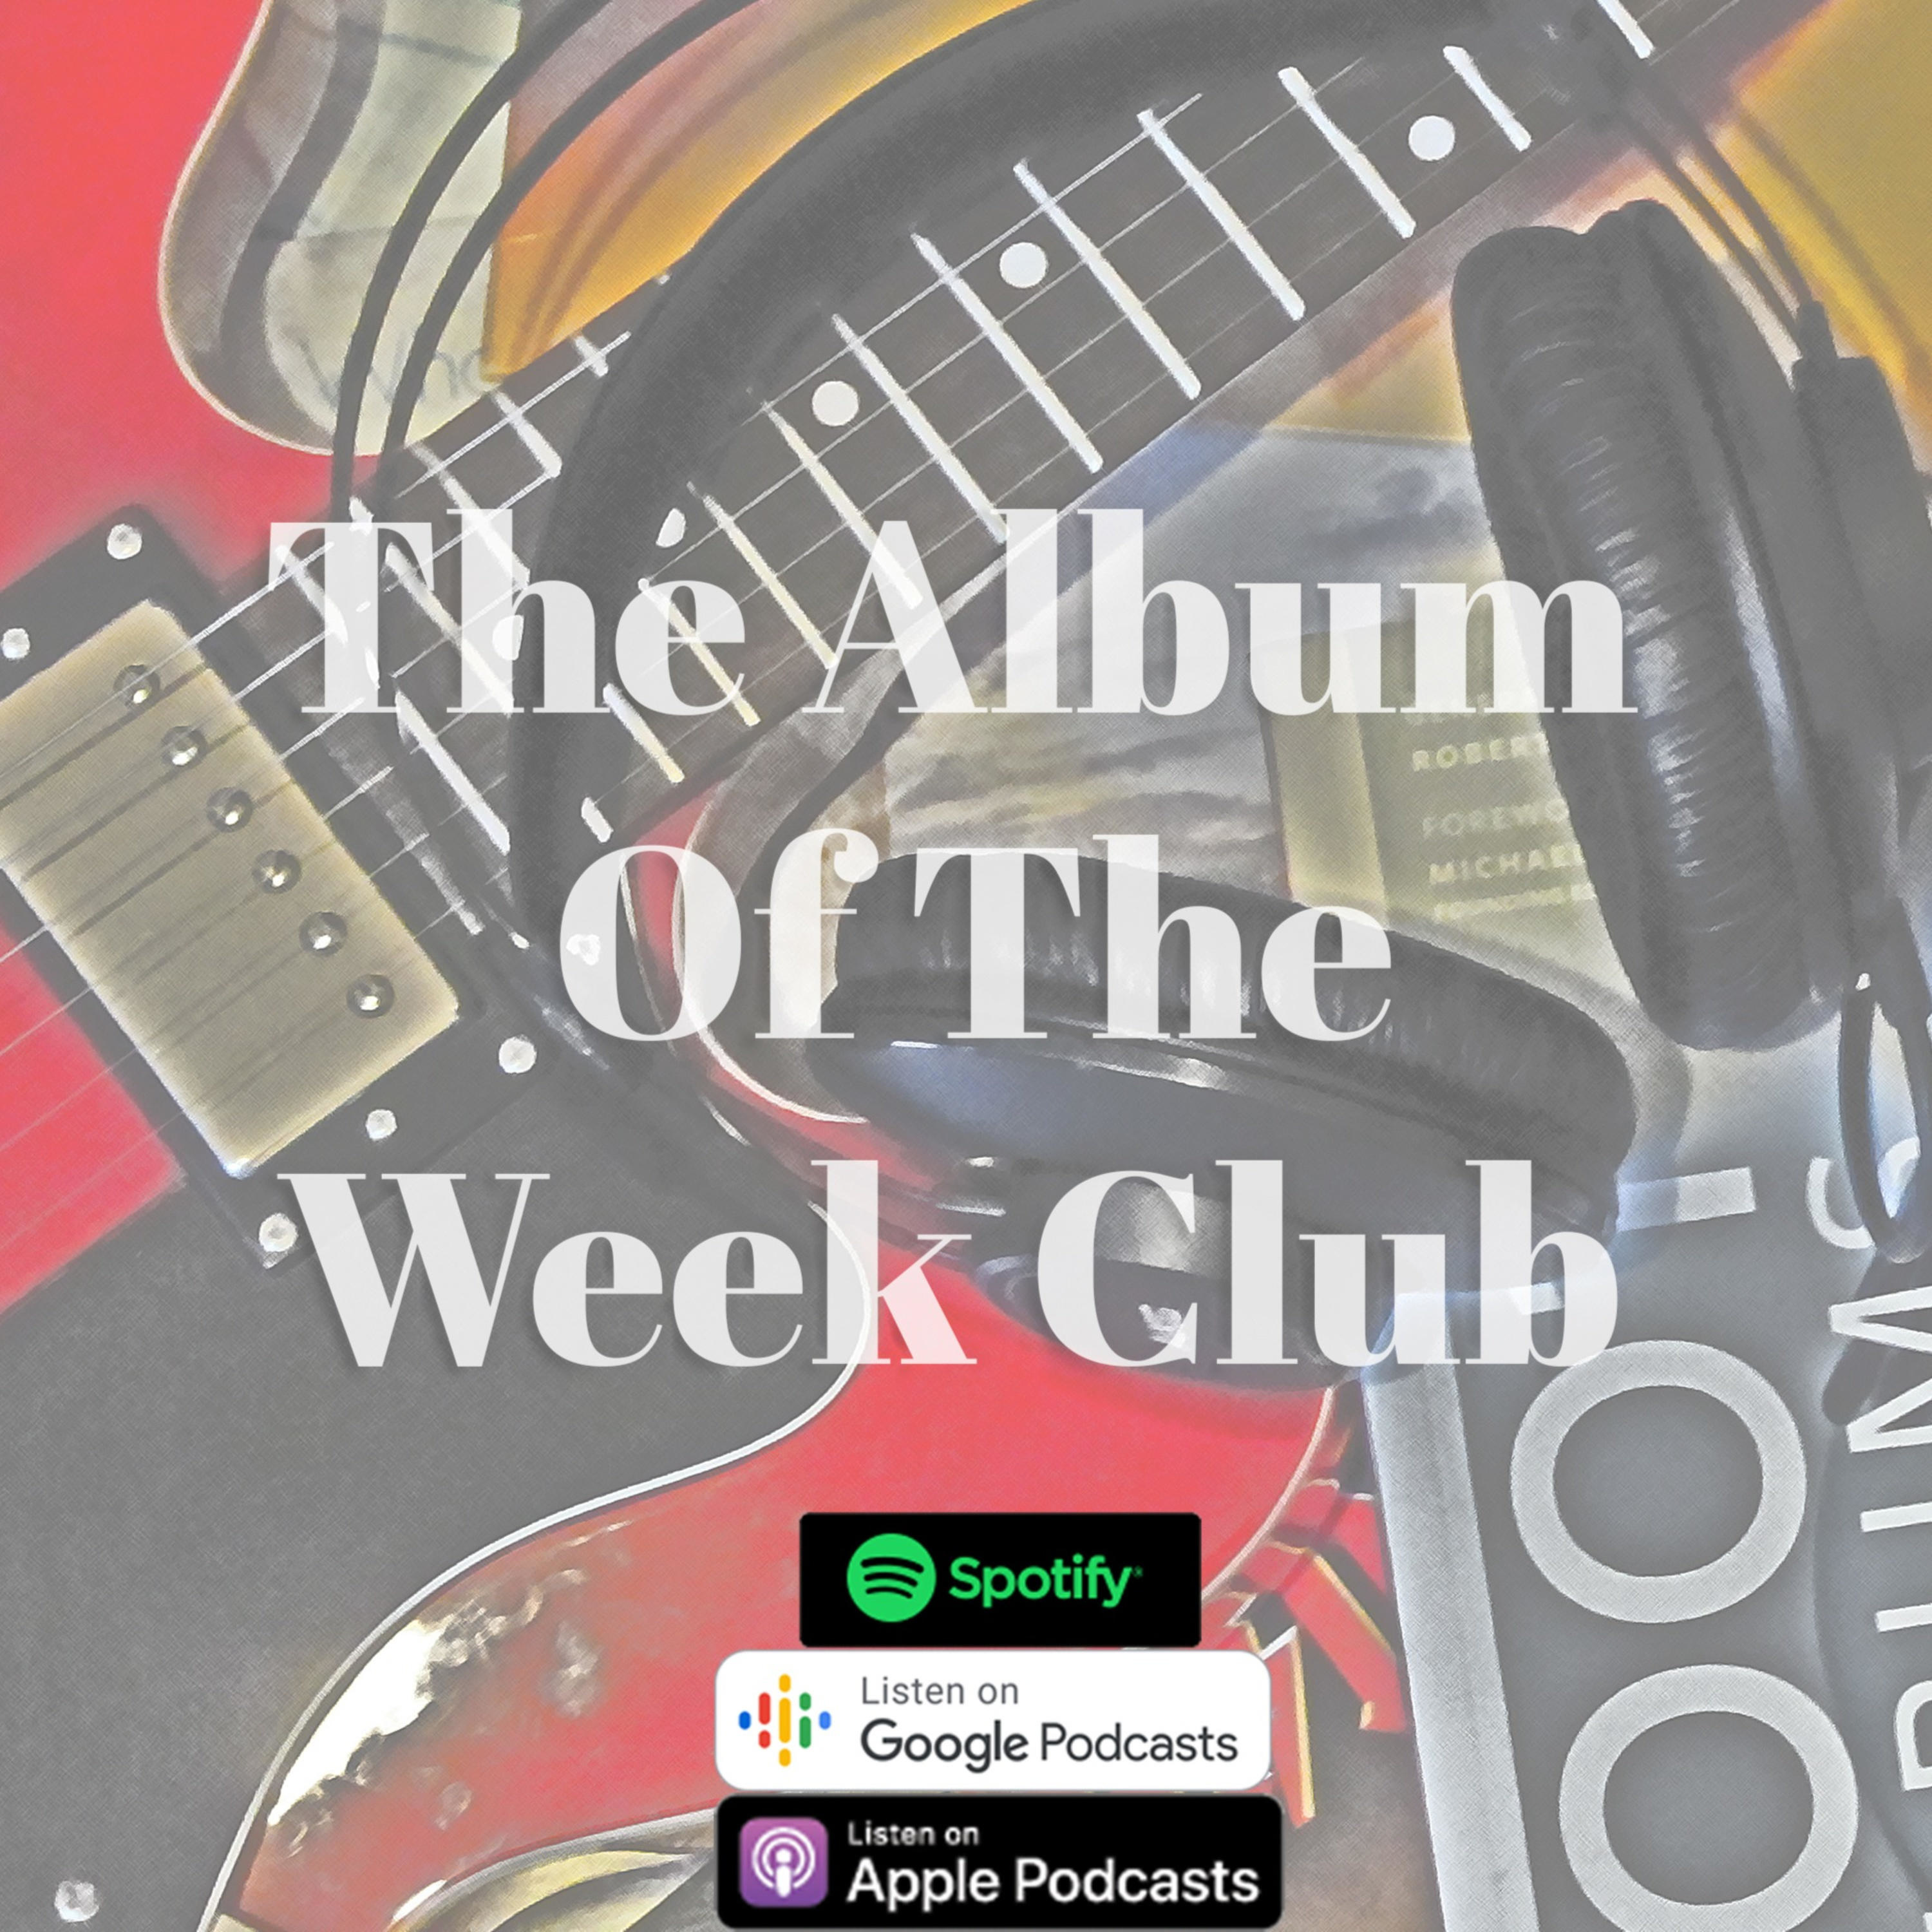 The Album Of The Week Club